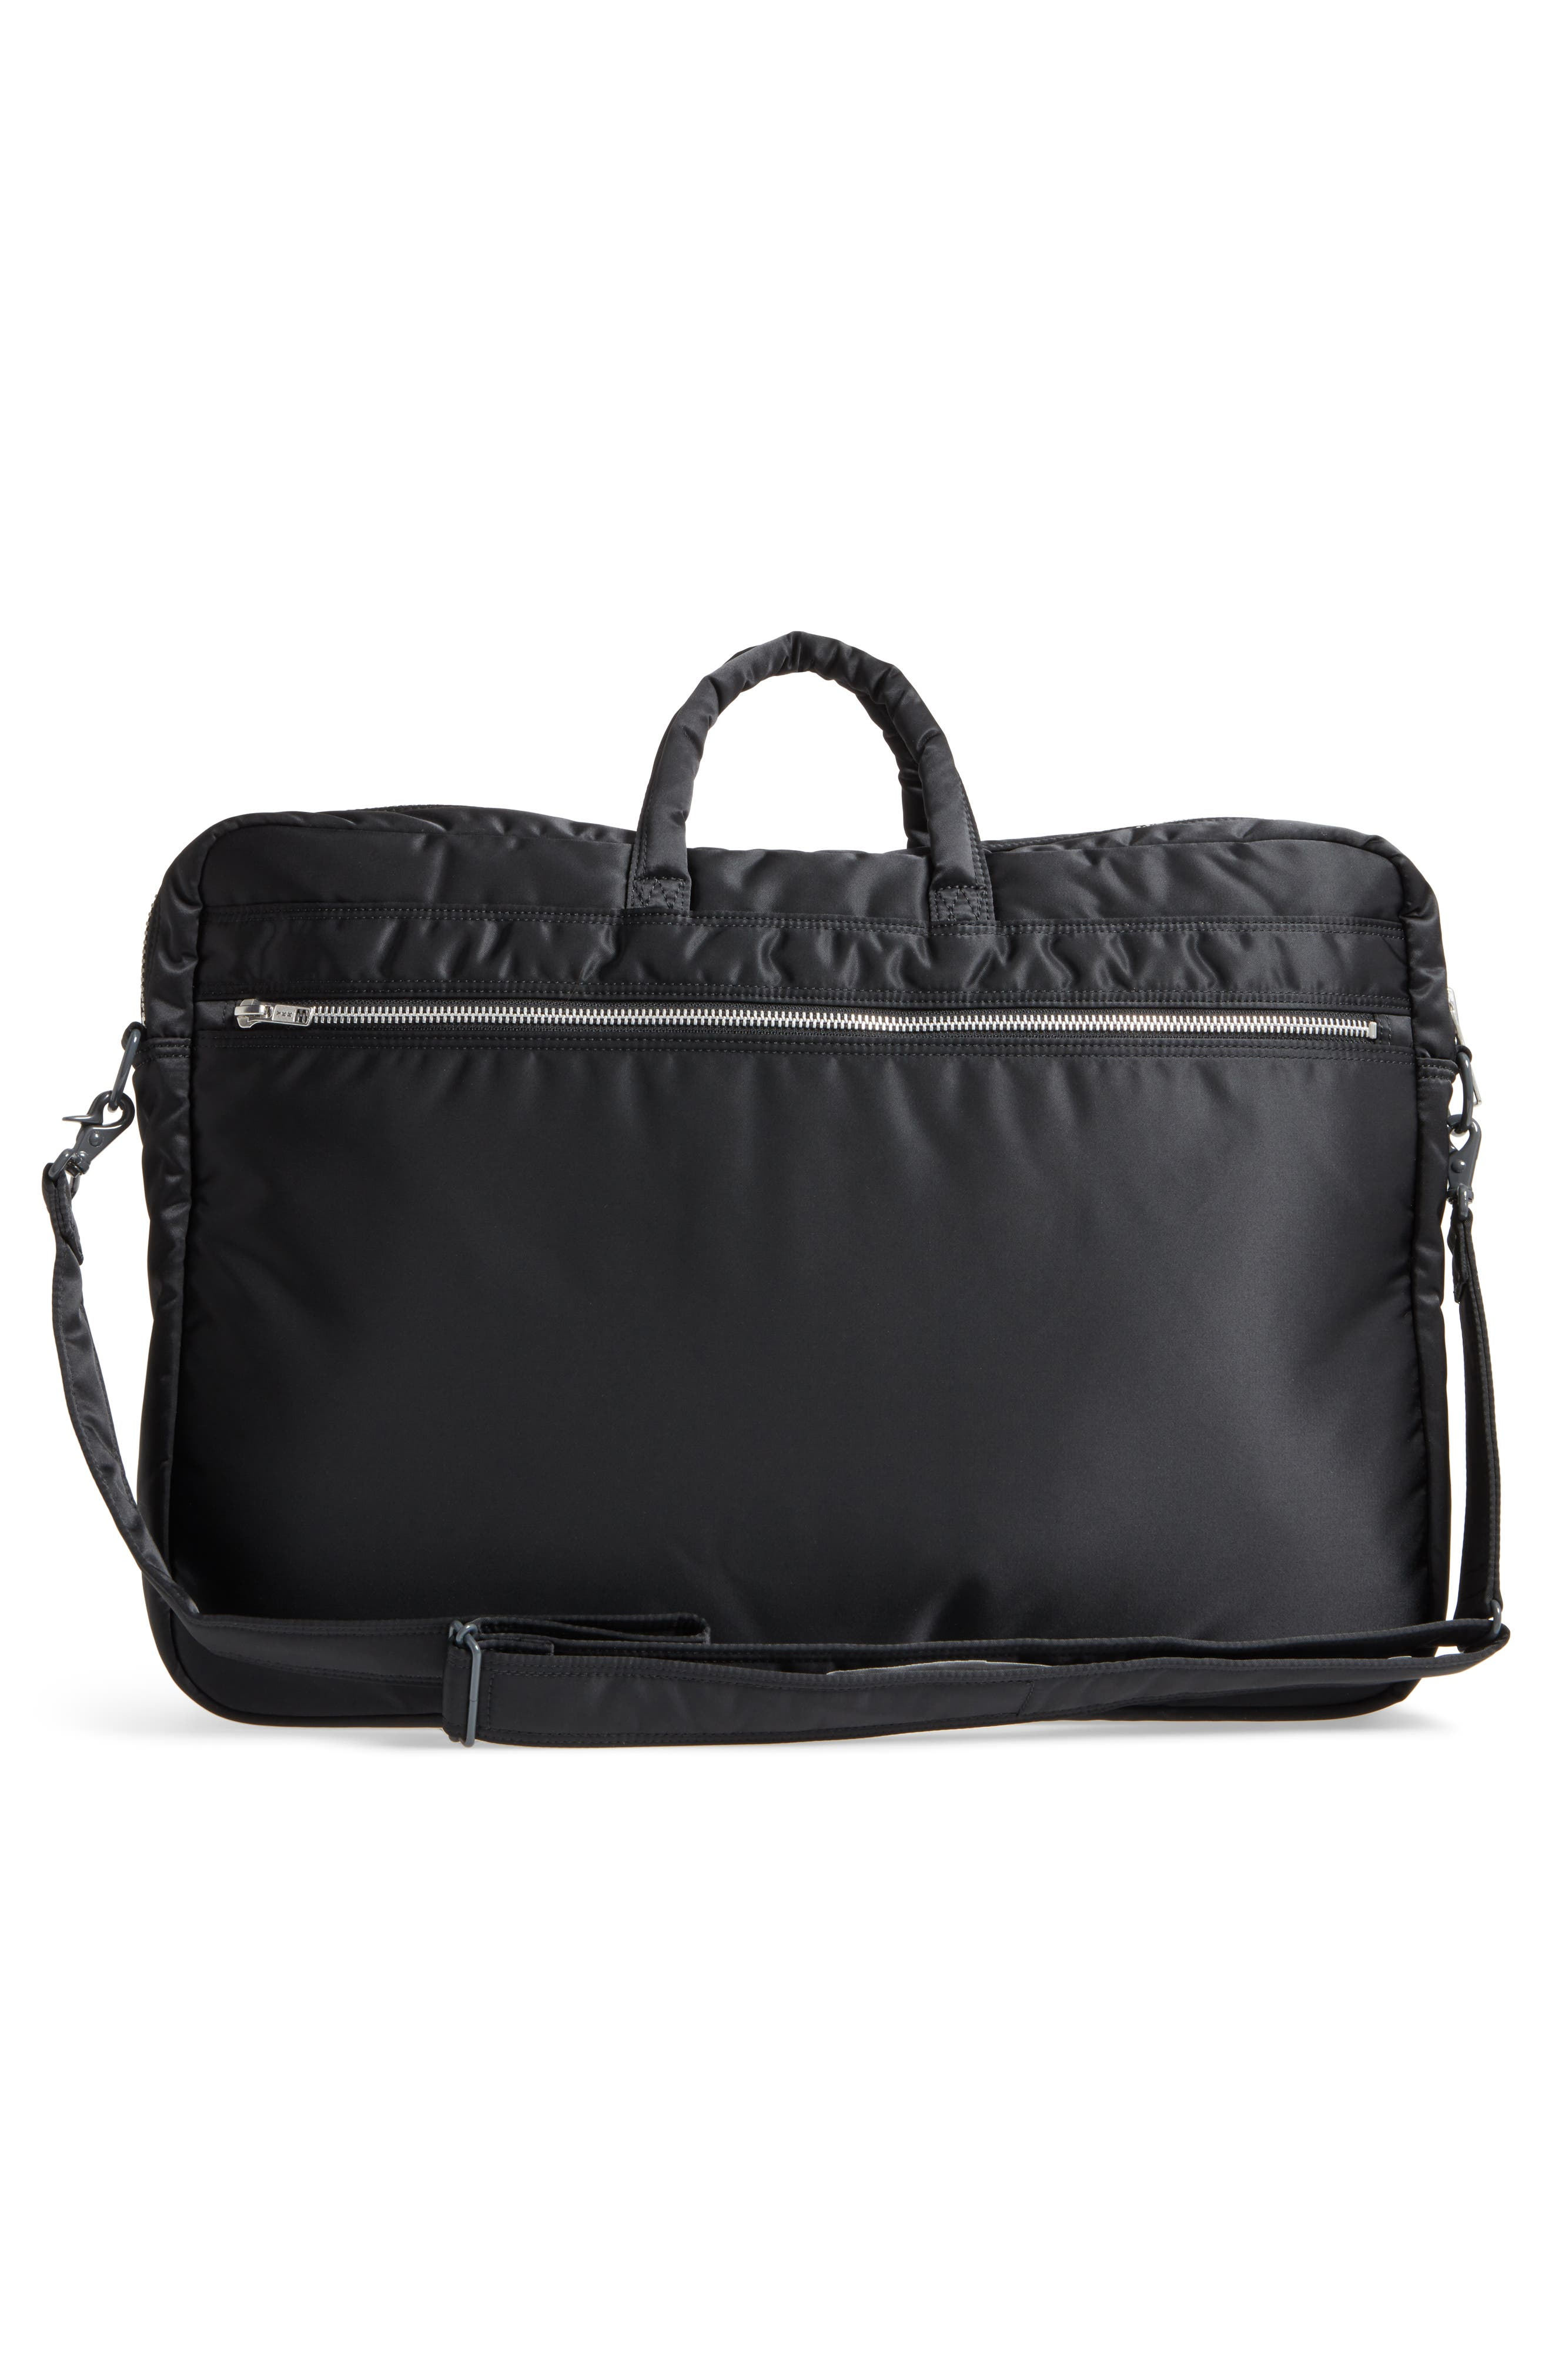 Porter-Yoshida & Co. Tanker Two-Way Briefcase,                             Alternate thumbnail 3, color,                             Black